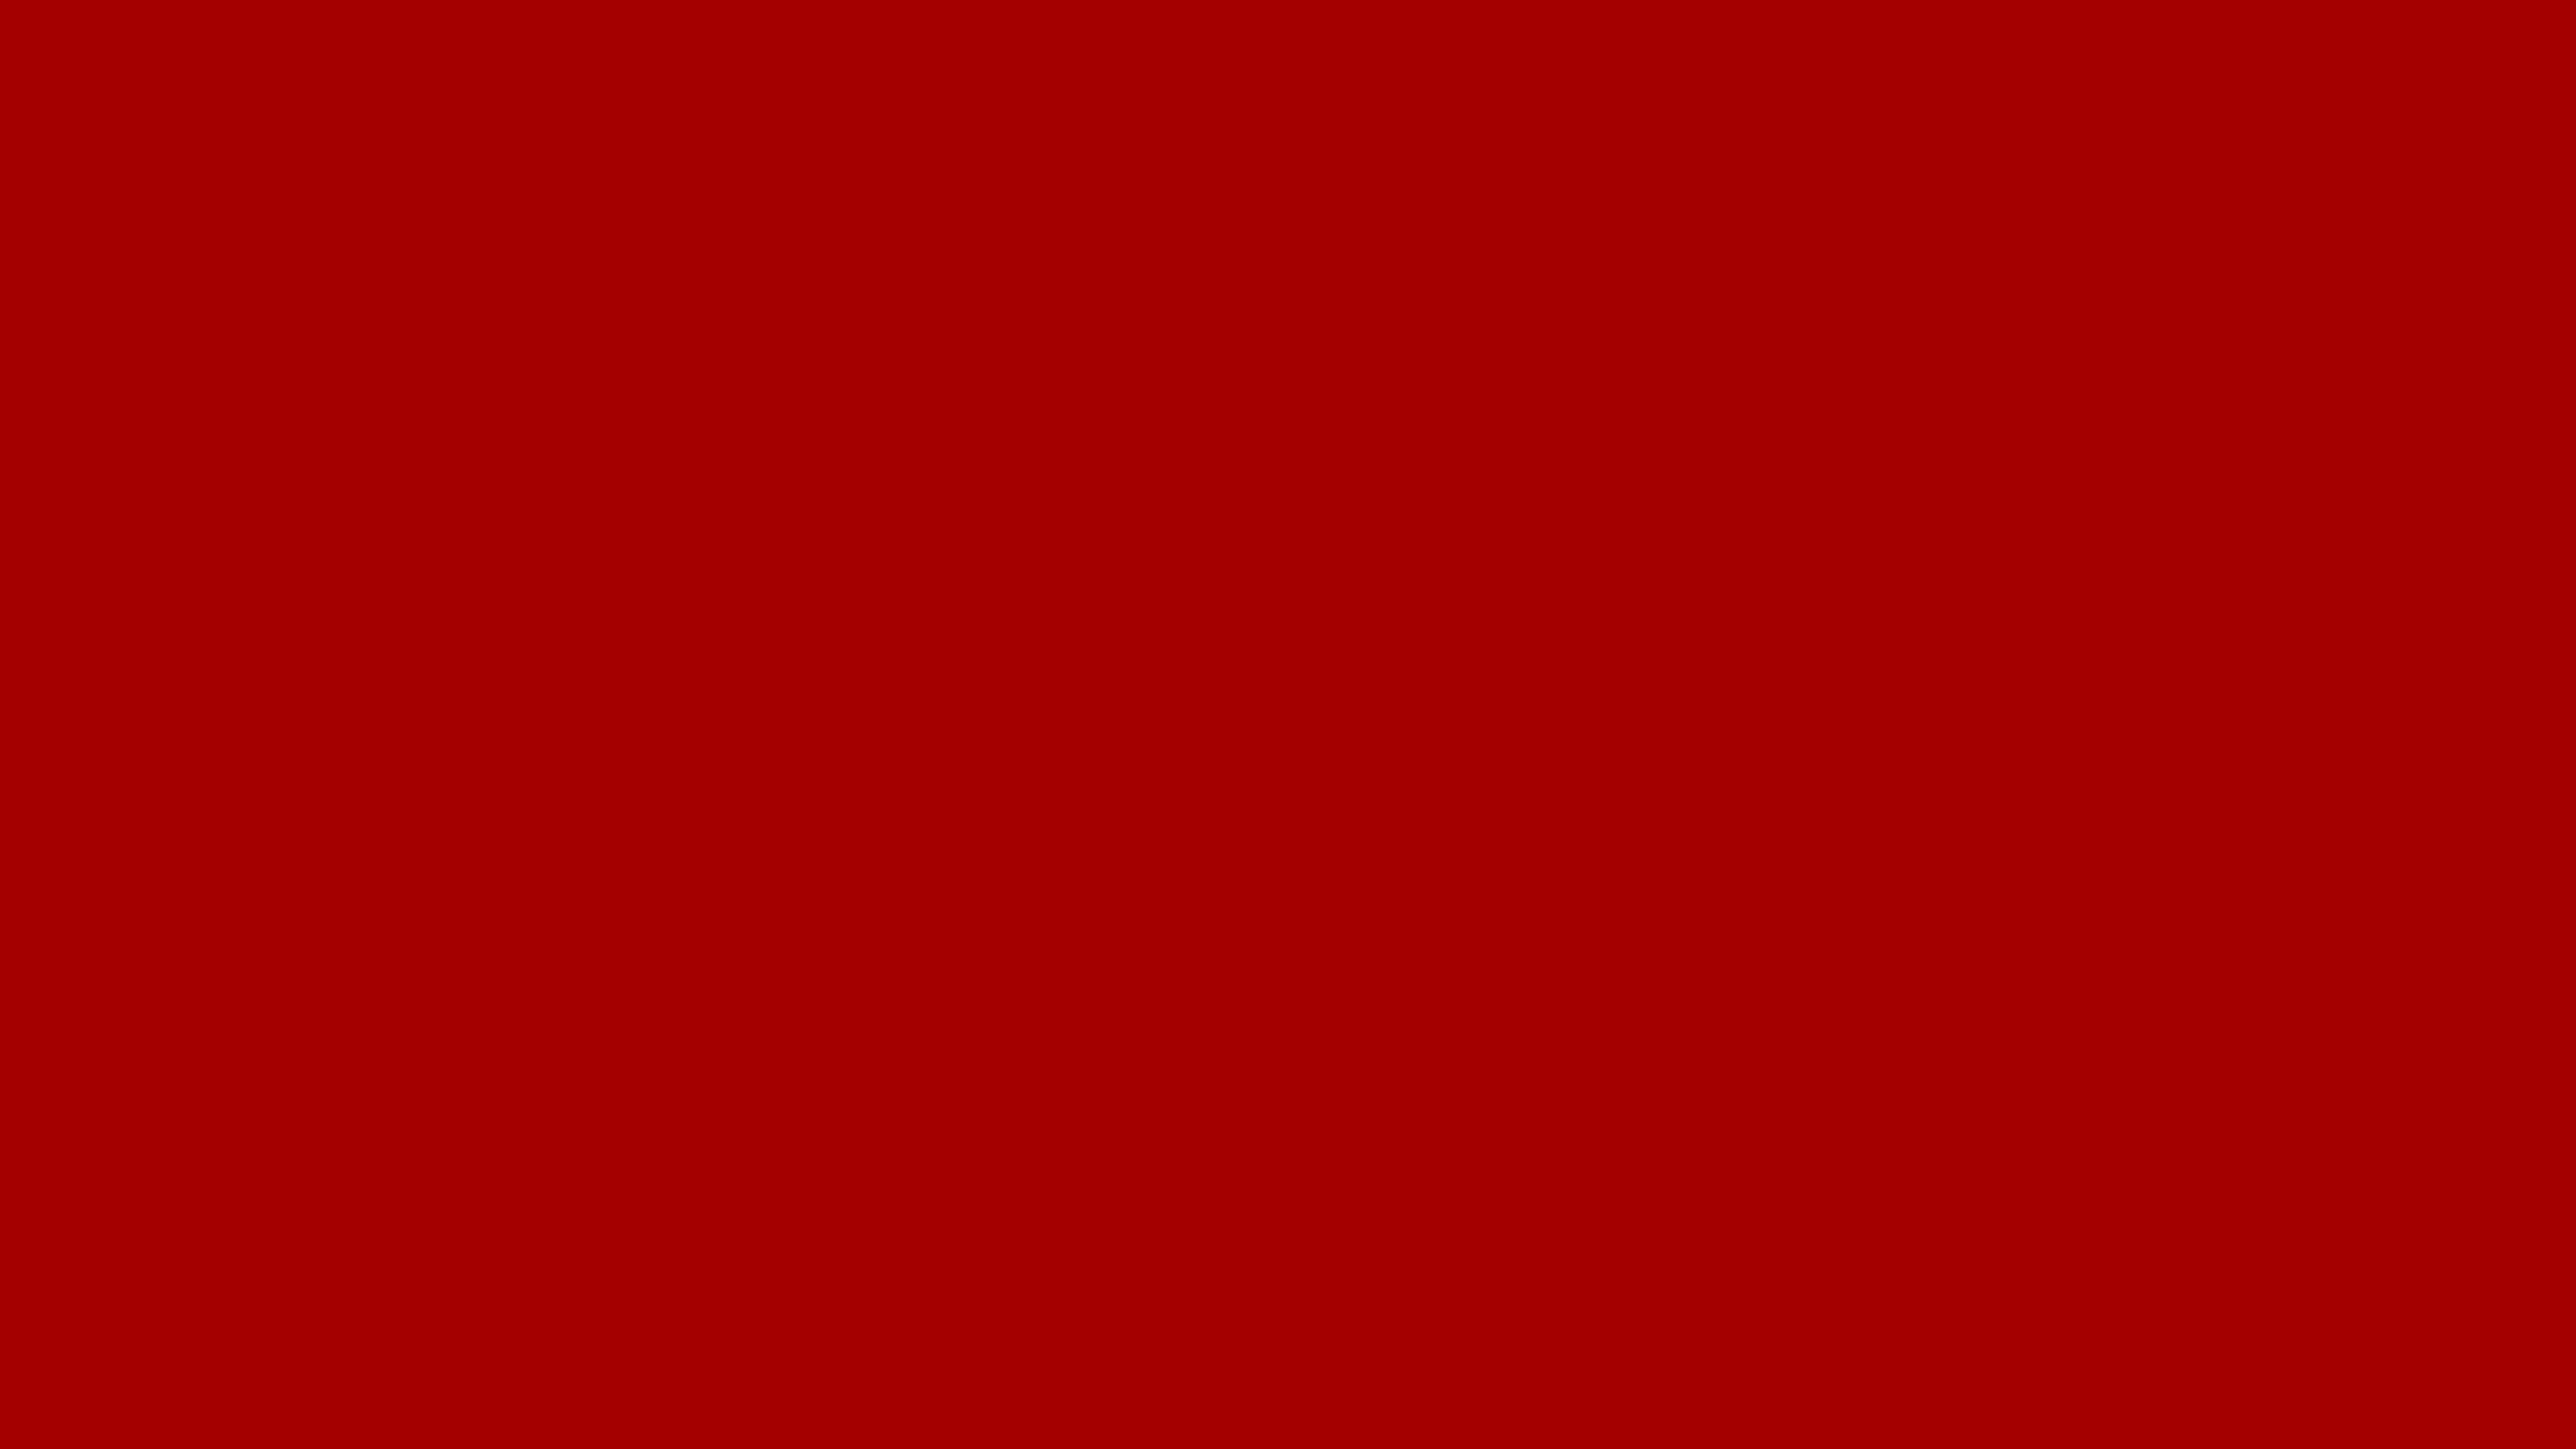 4096x2304 Dark Candy Apple Red Solid Color Background